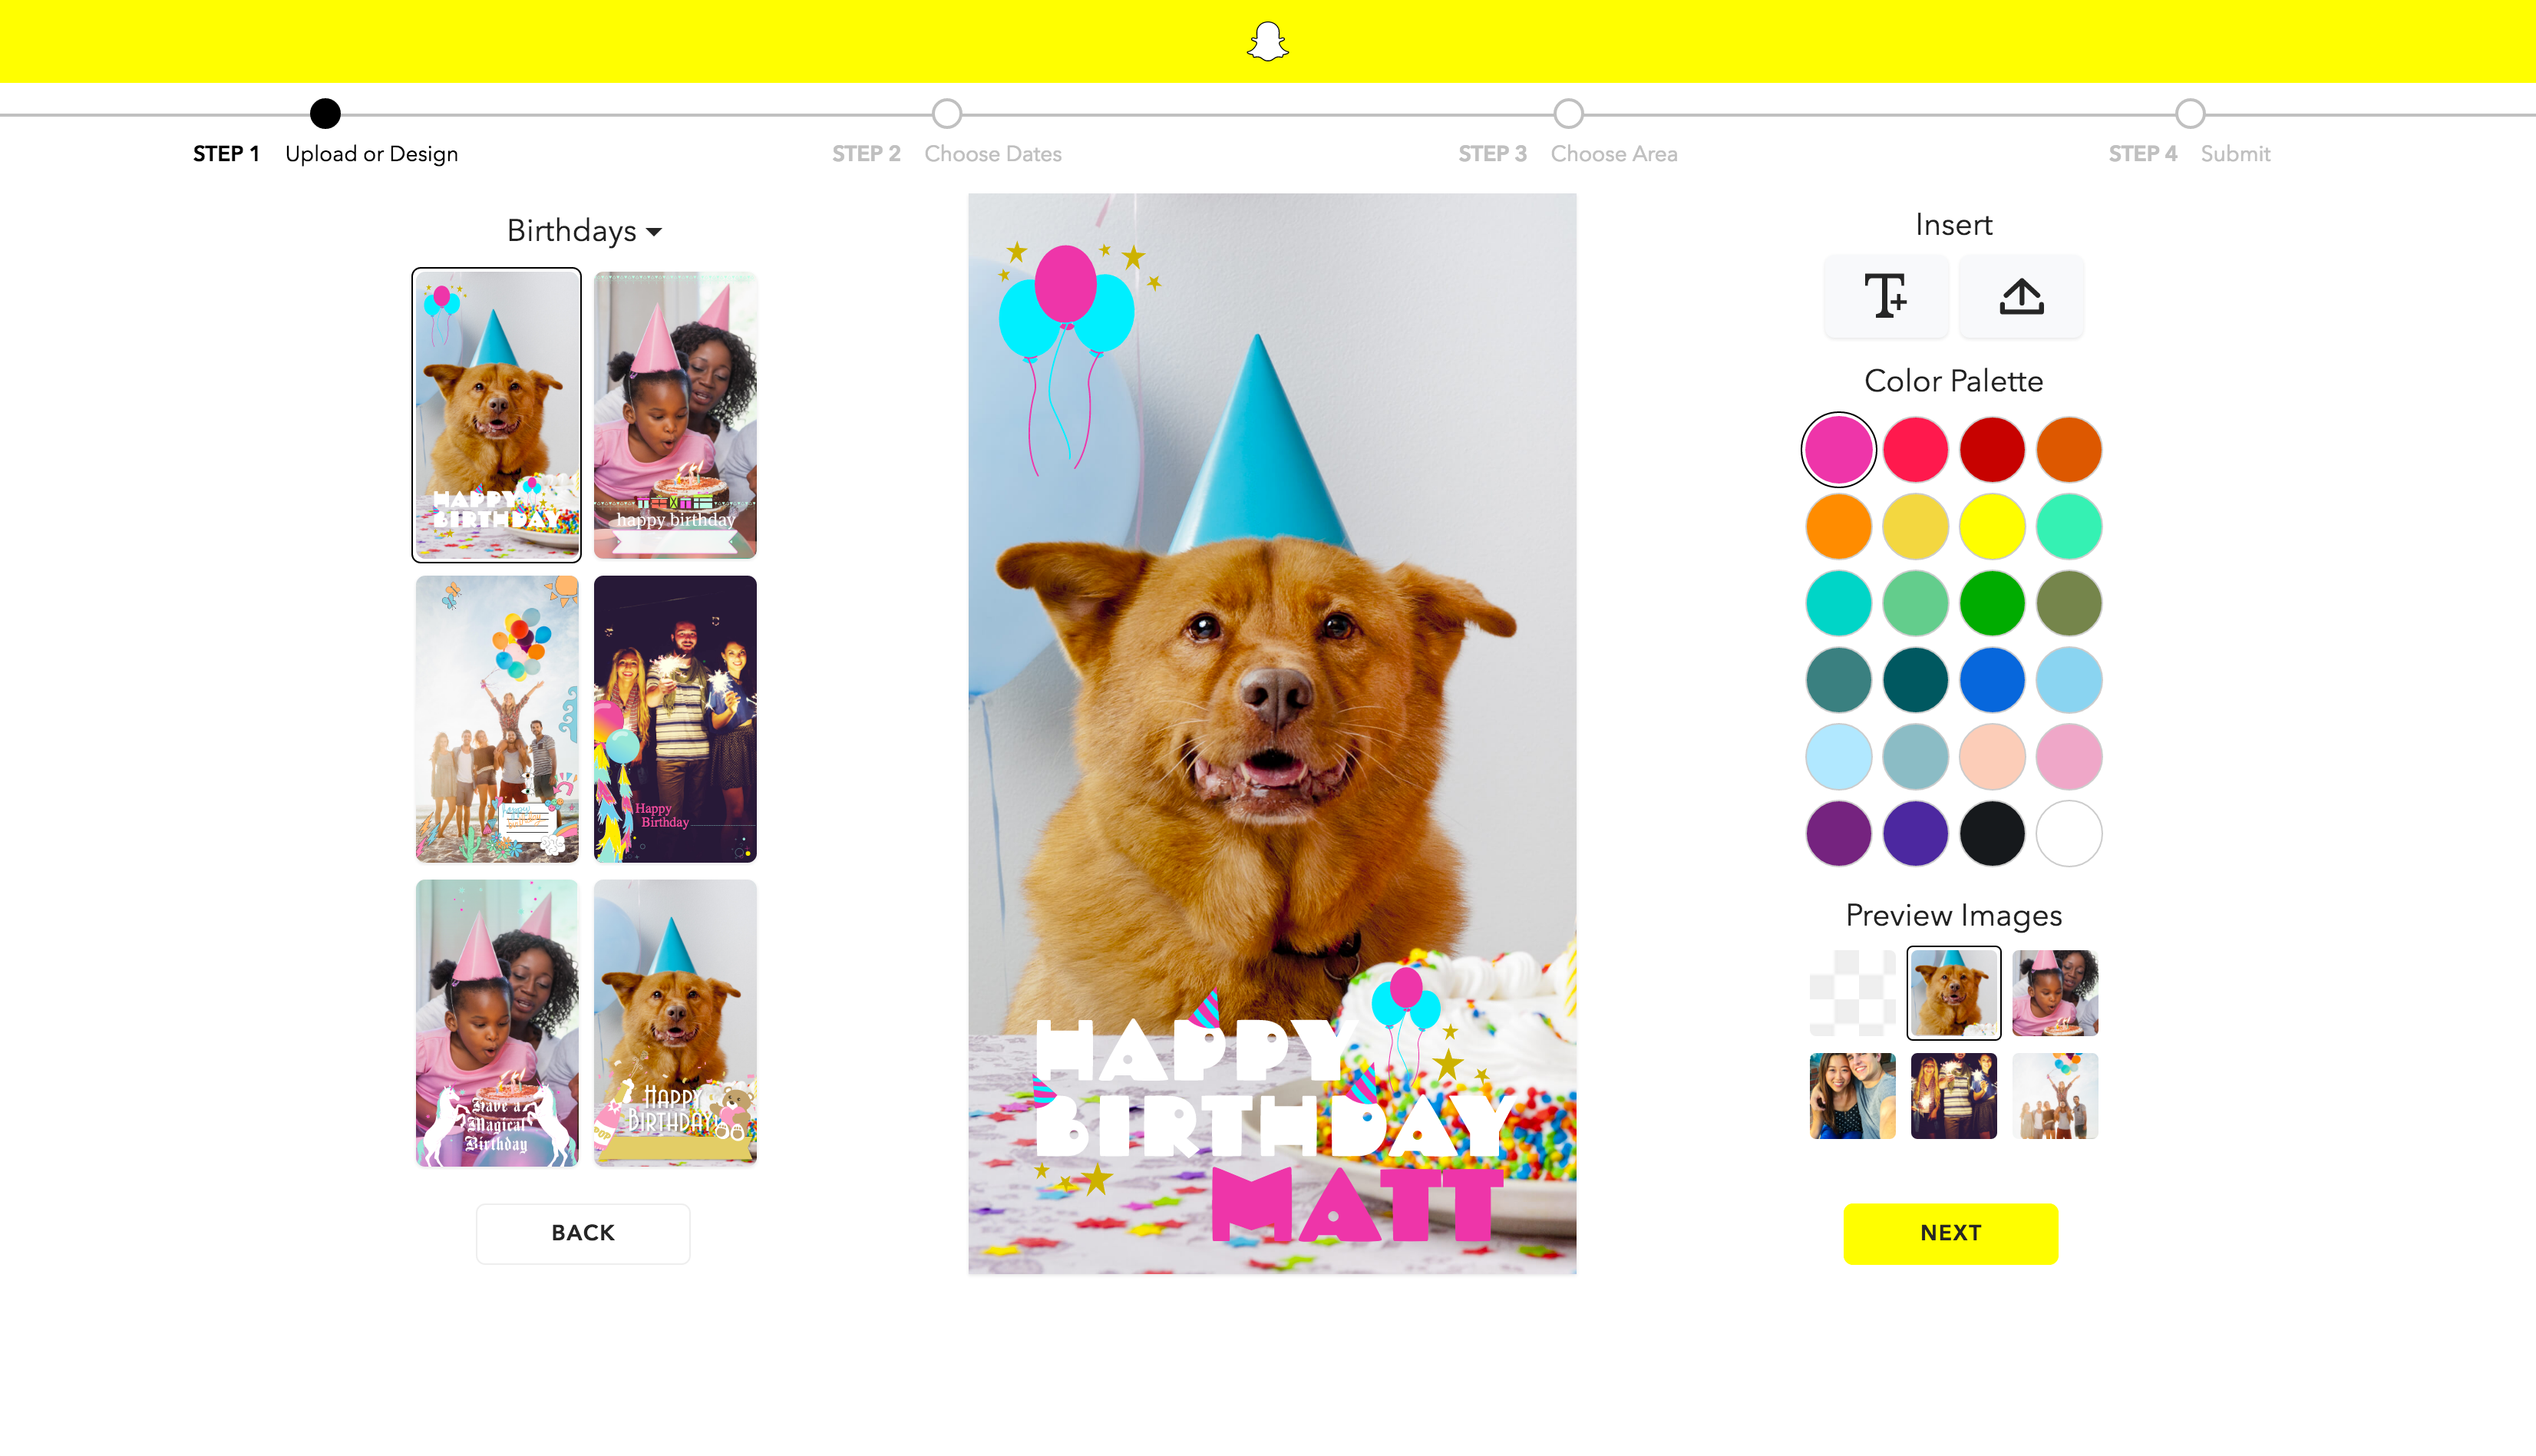 Snapchat makes it easier to create your own on demand geofilters techcrunch for How to make a snapchat geofilter on photoshop